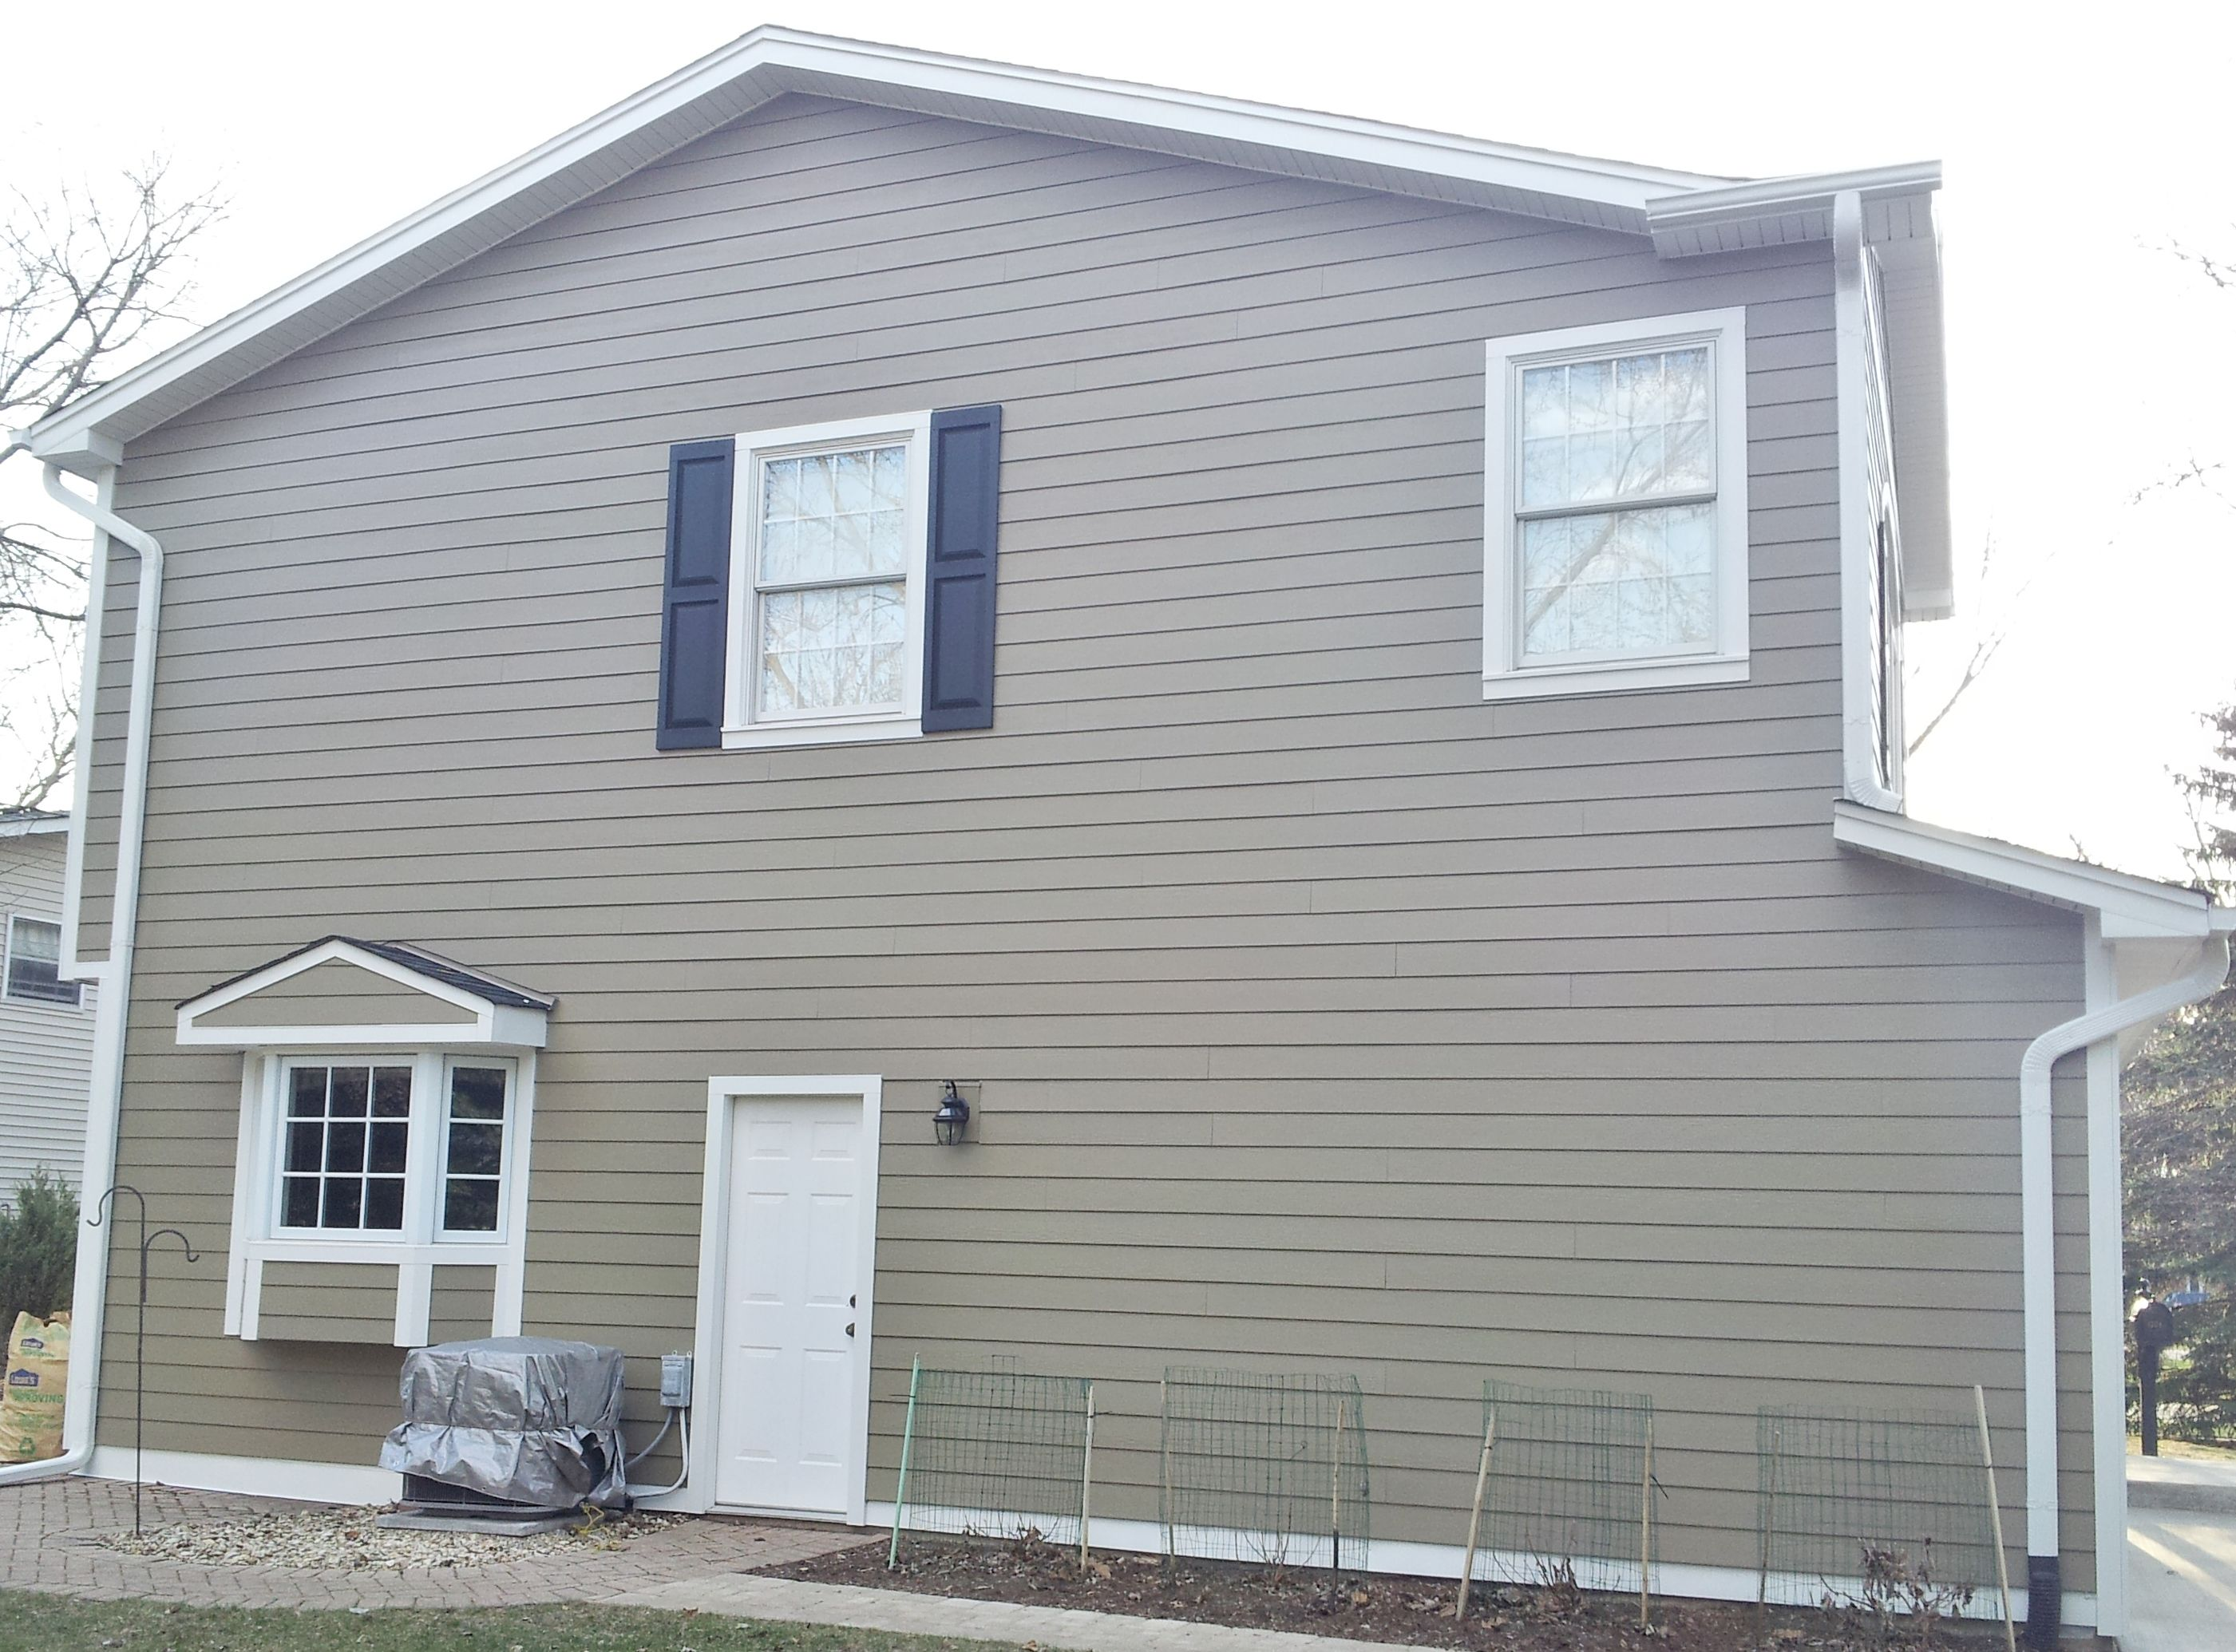 Siding Windows Roofing Contractors Naperville Il Exterior House Renovation House Exterior Hardie Siding